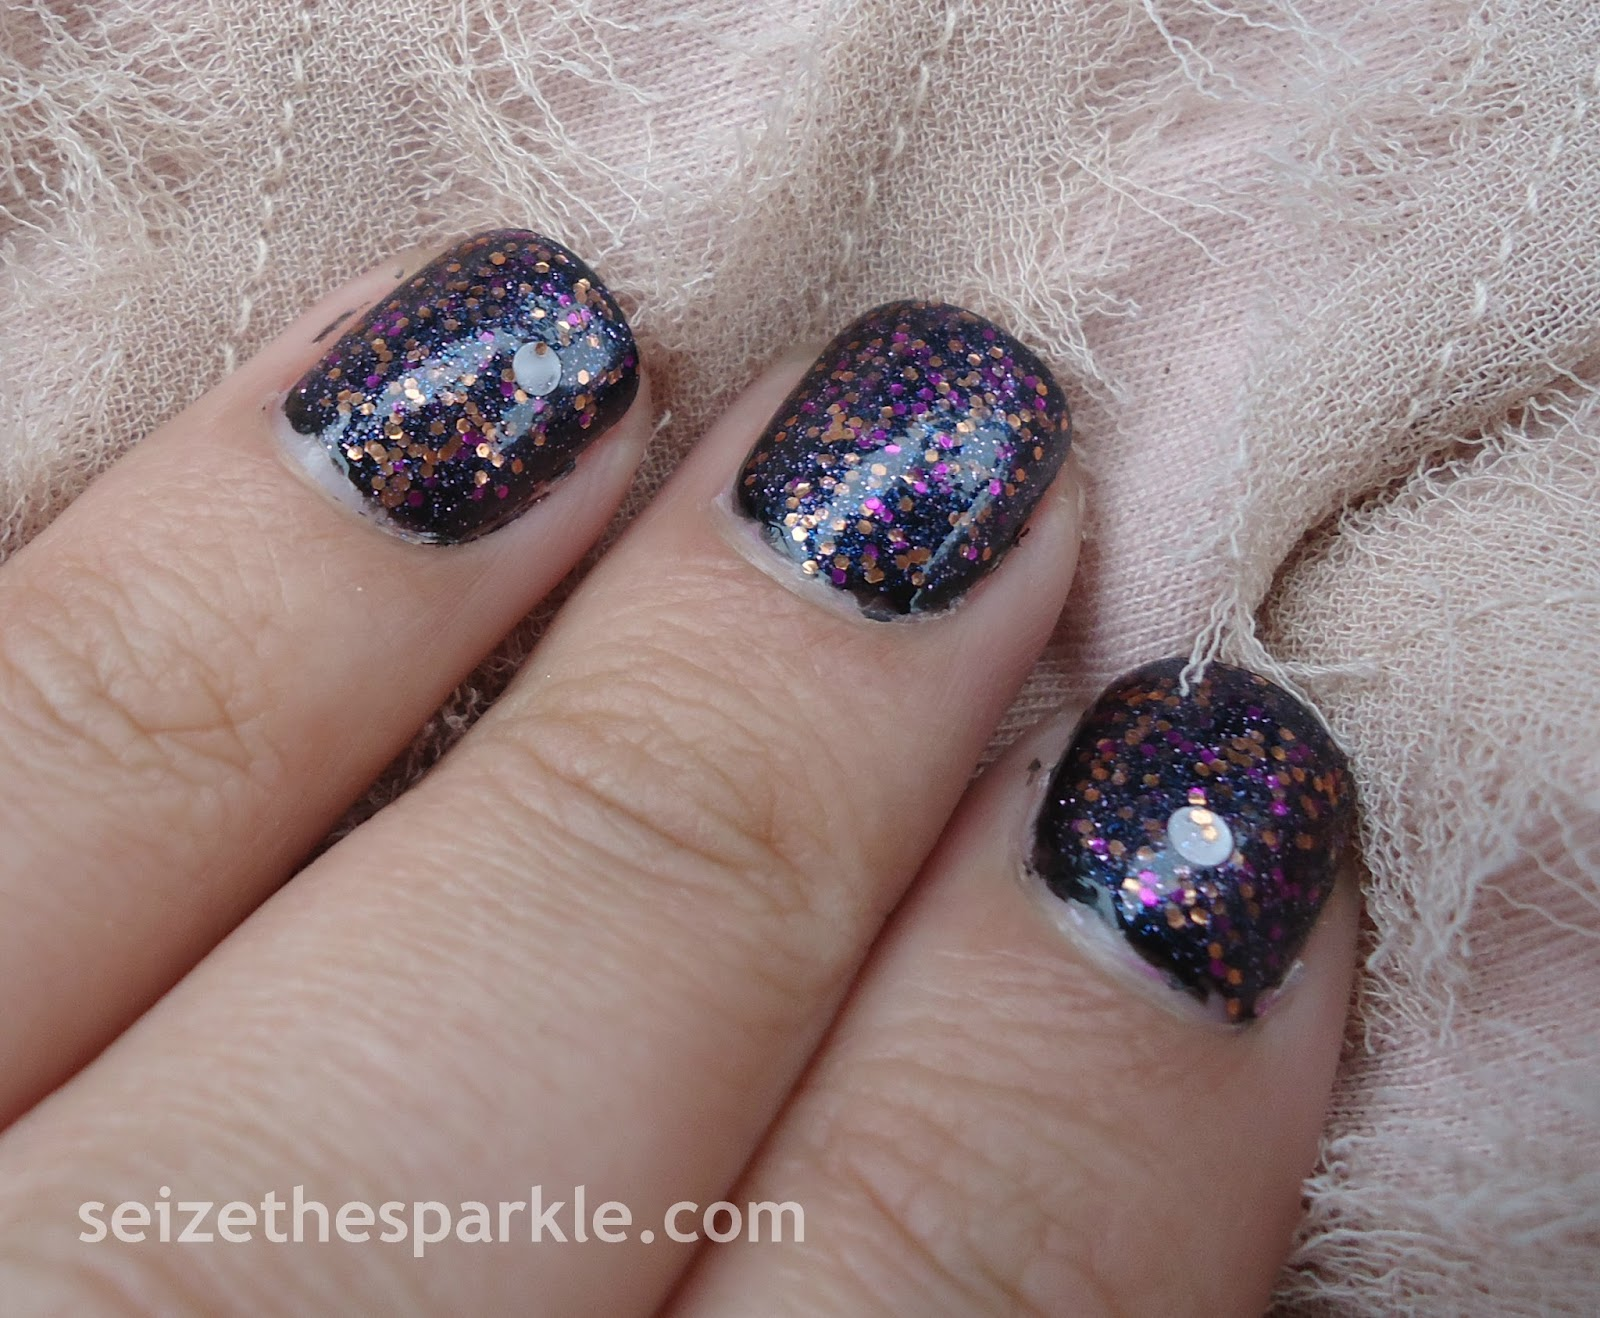 Intergalactic Space by Orly